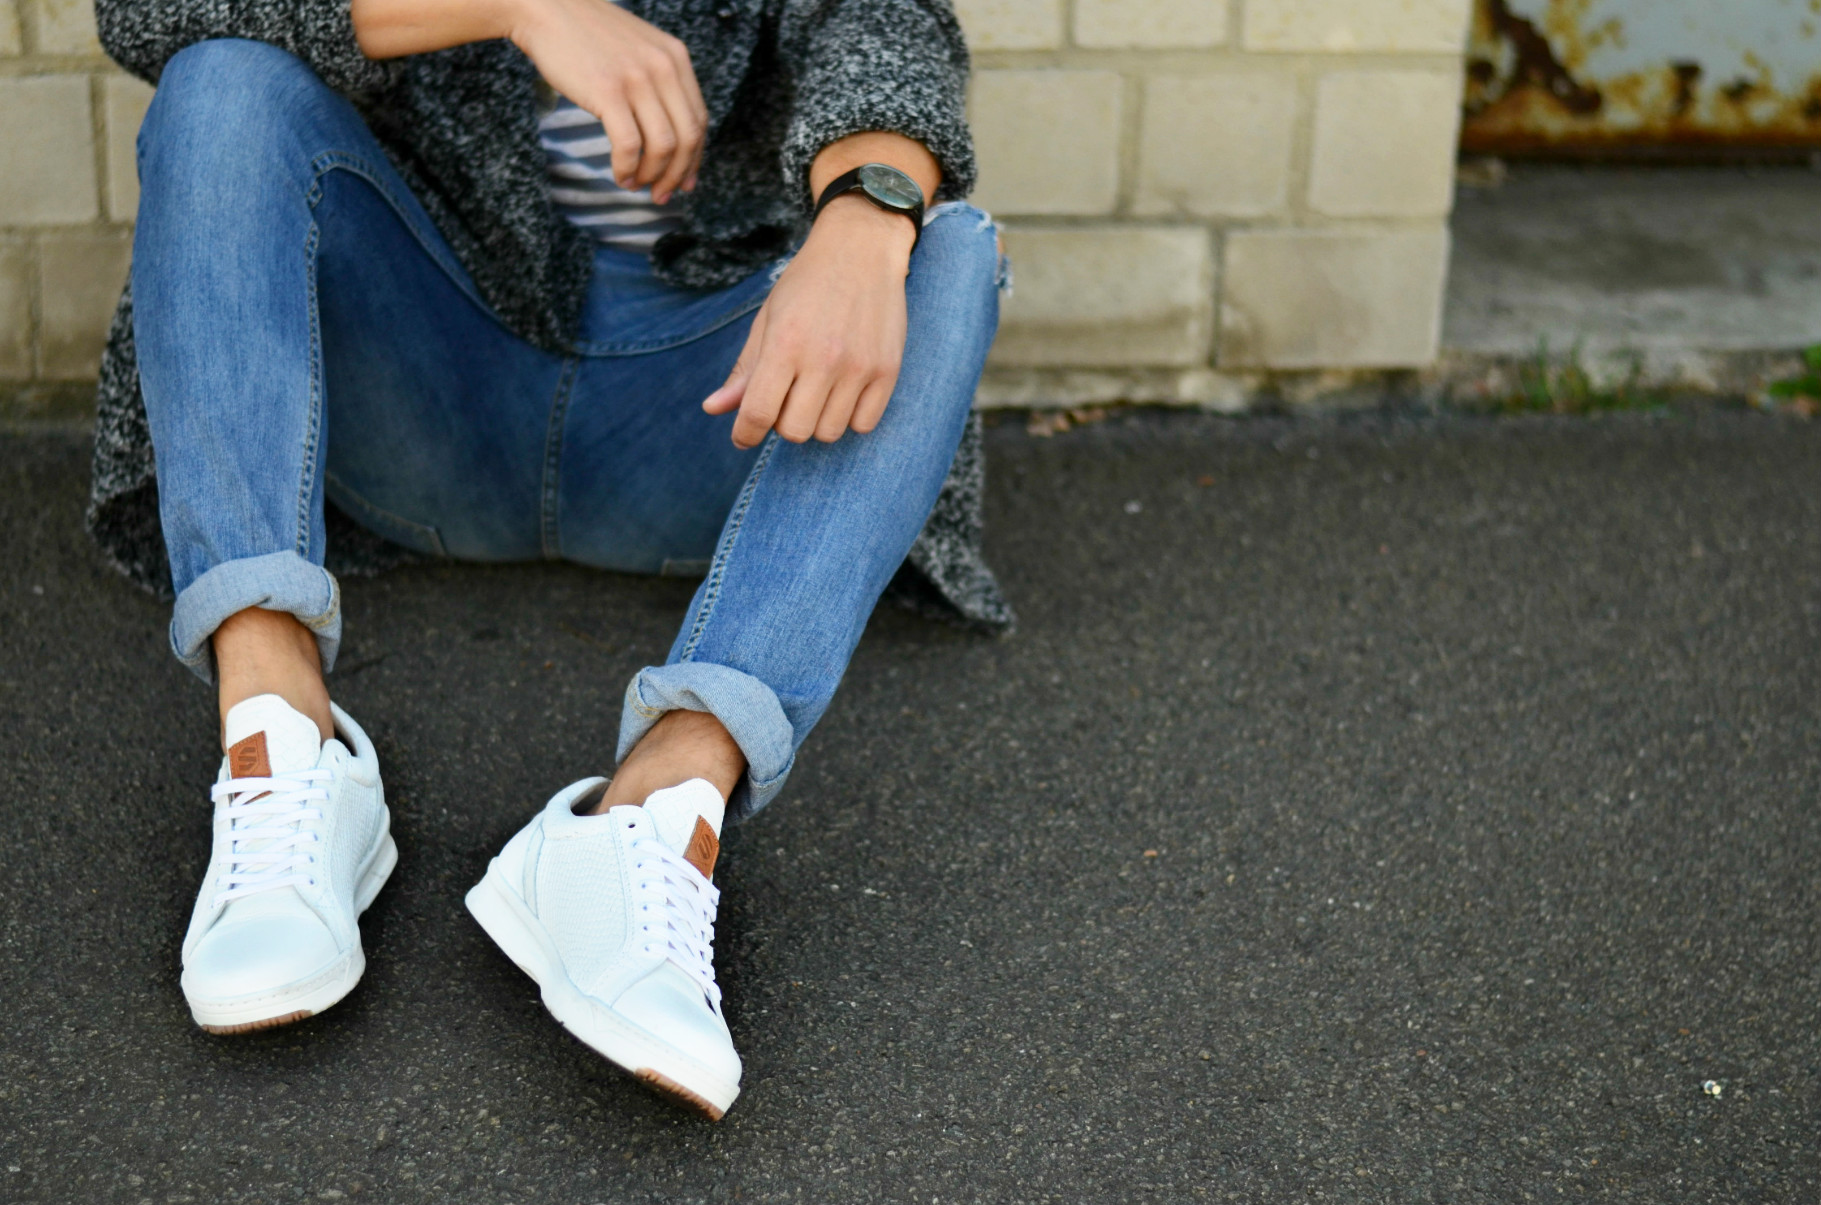 TommeezJerry-Sacha-Shoes-Sneaker-Skinny-Jeans-Men-Fashion-Blog-Mode-Outfit-Details